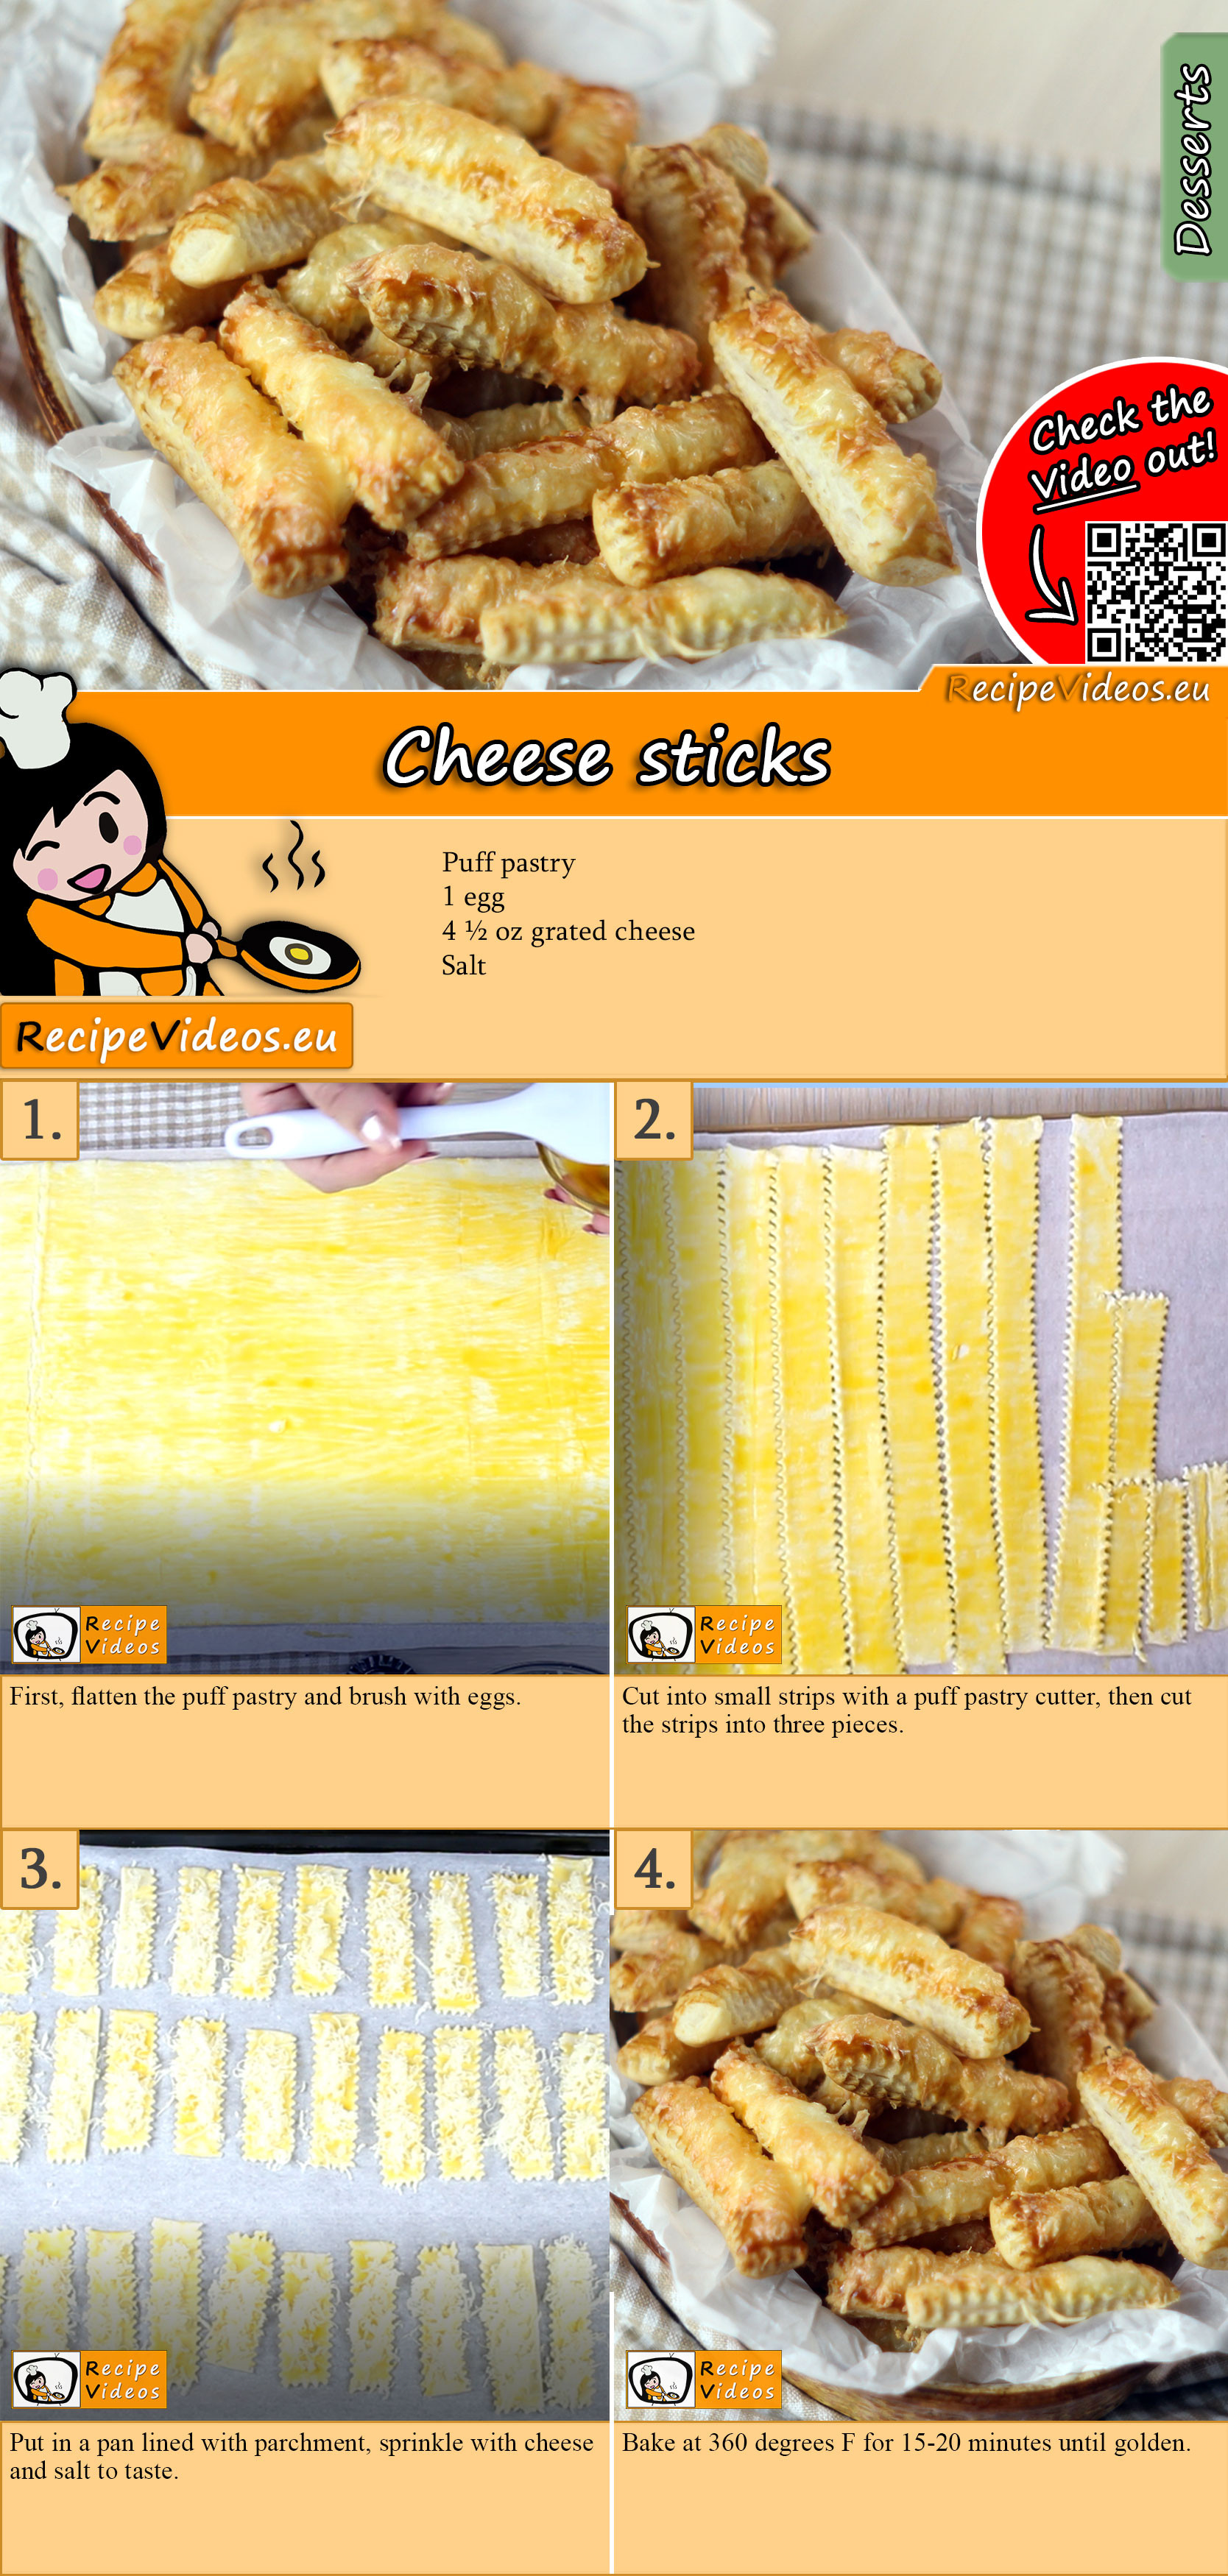 Cheese sticks recipe with video